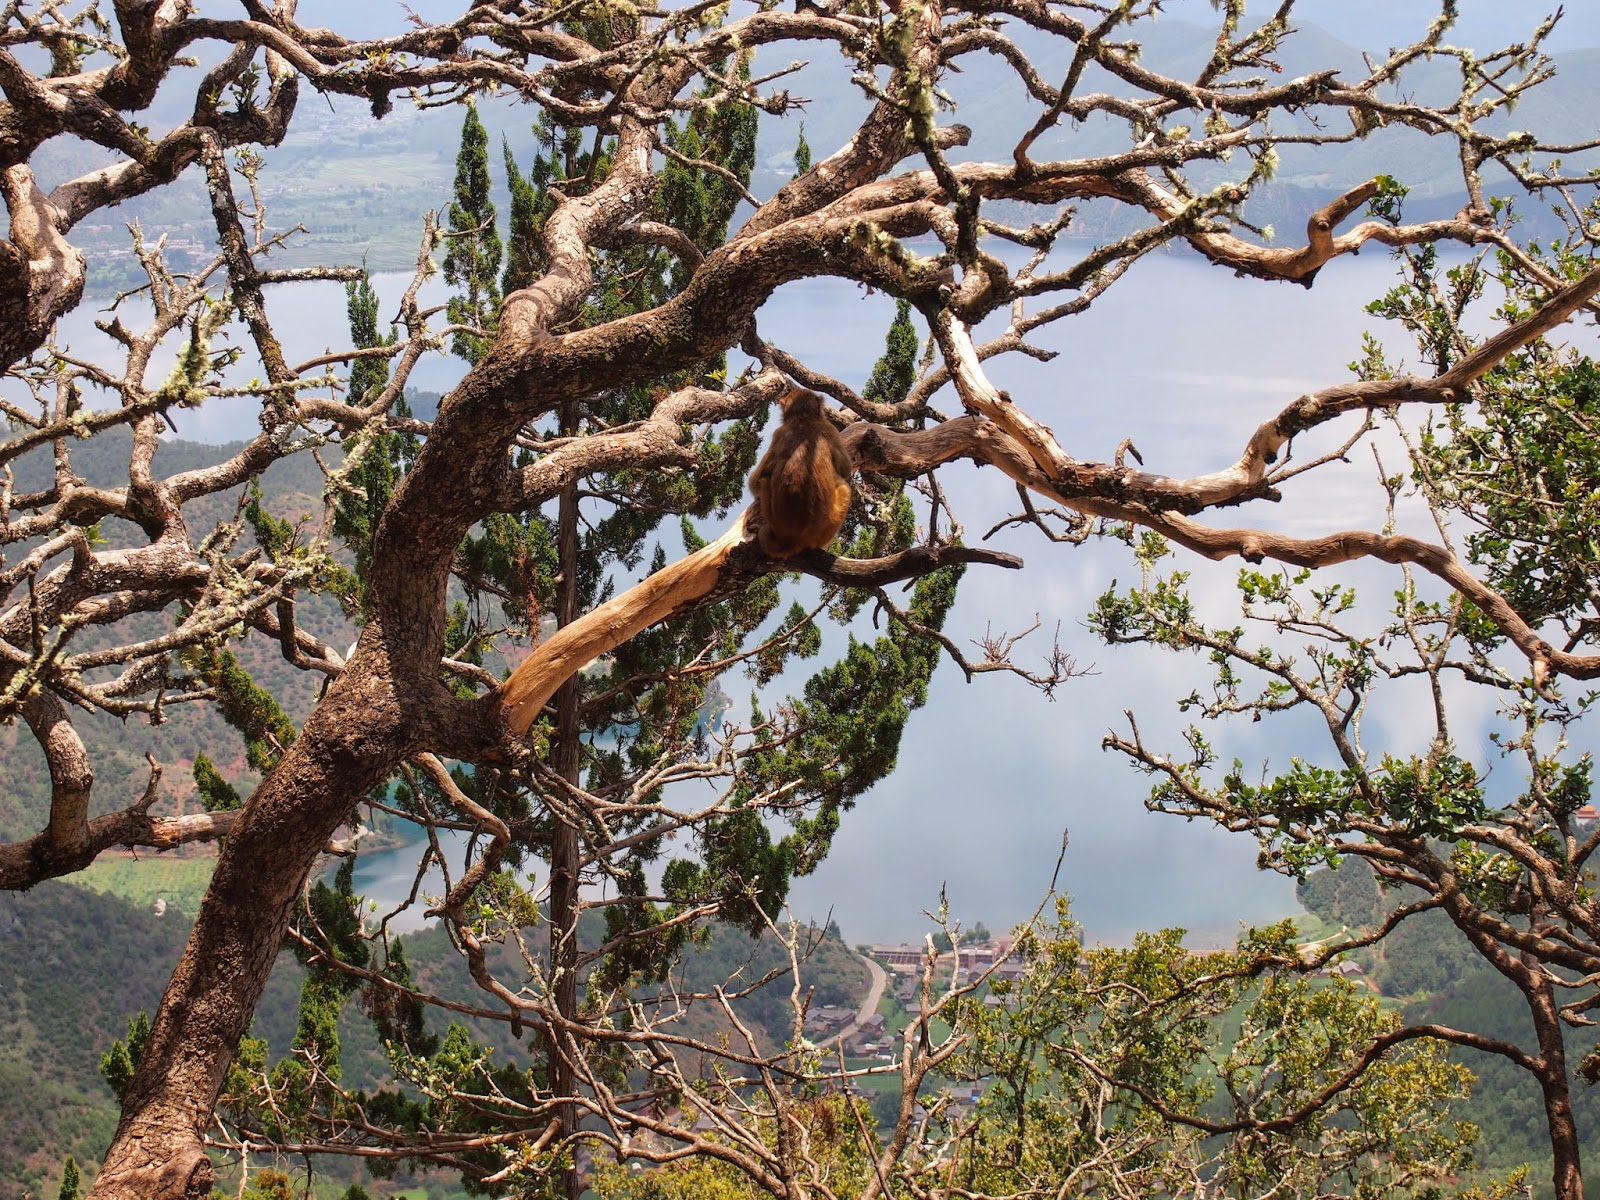 A monkey with the best view of lugu lake